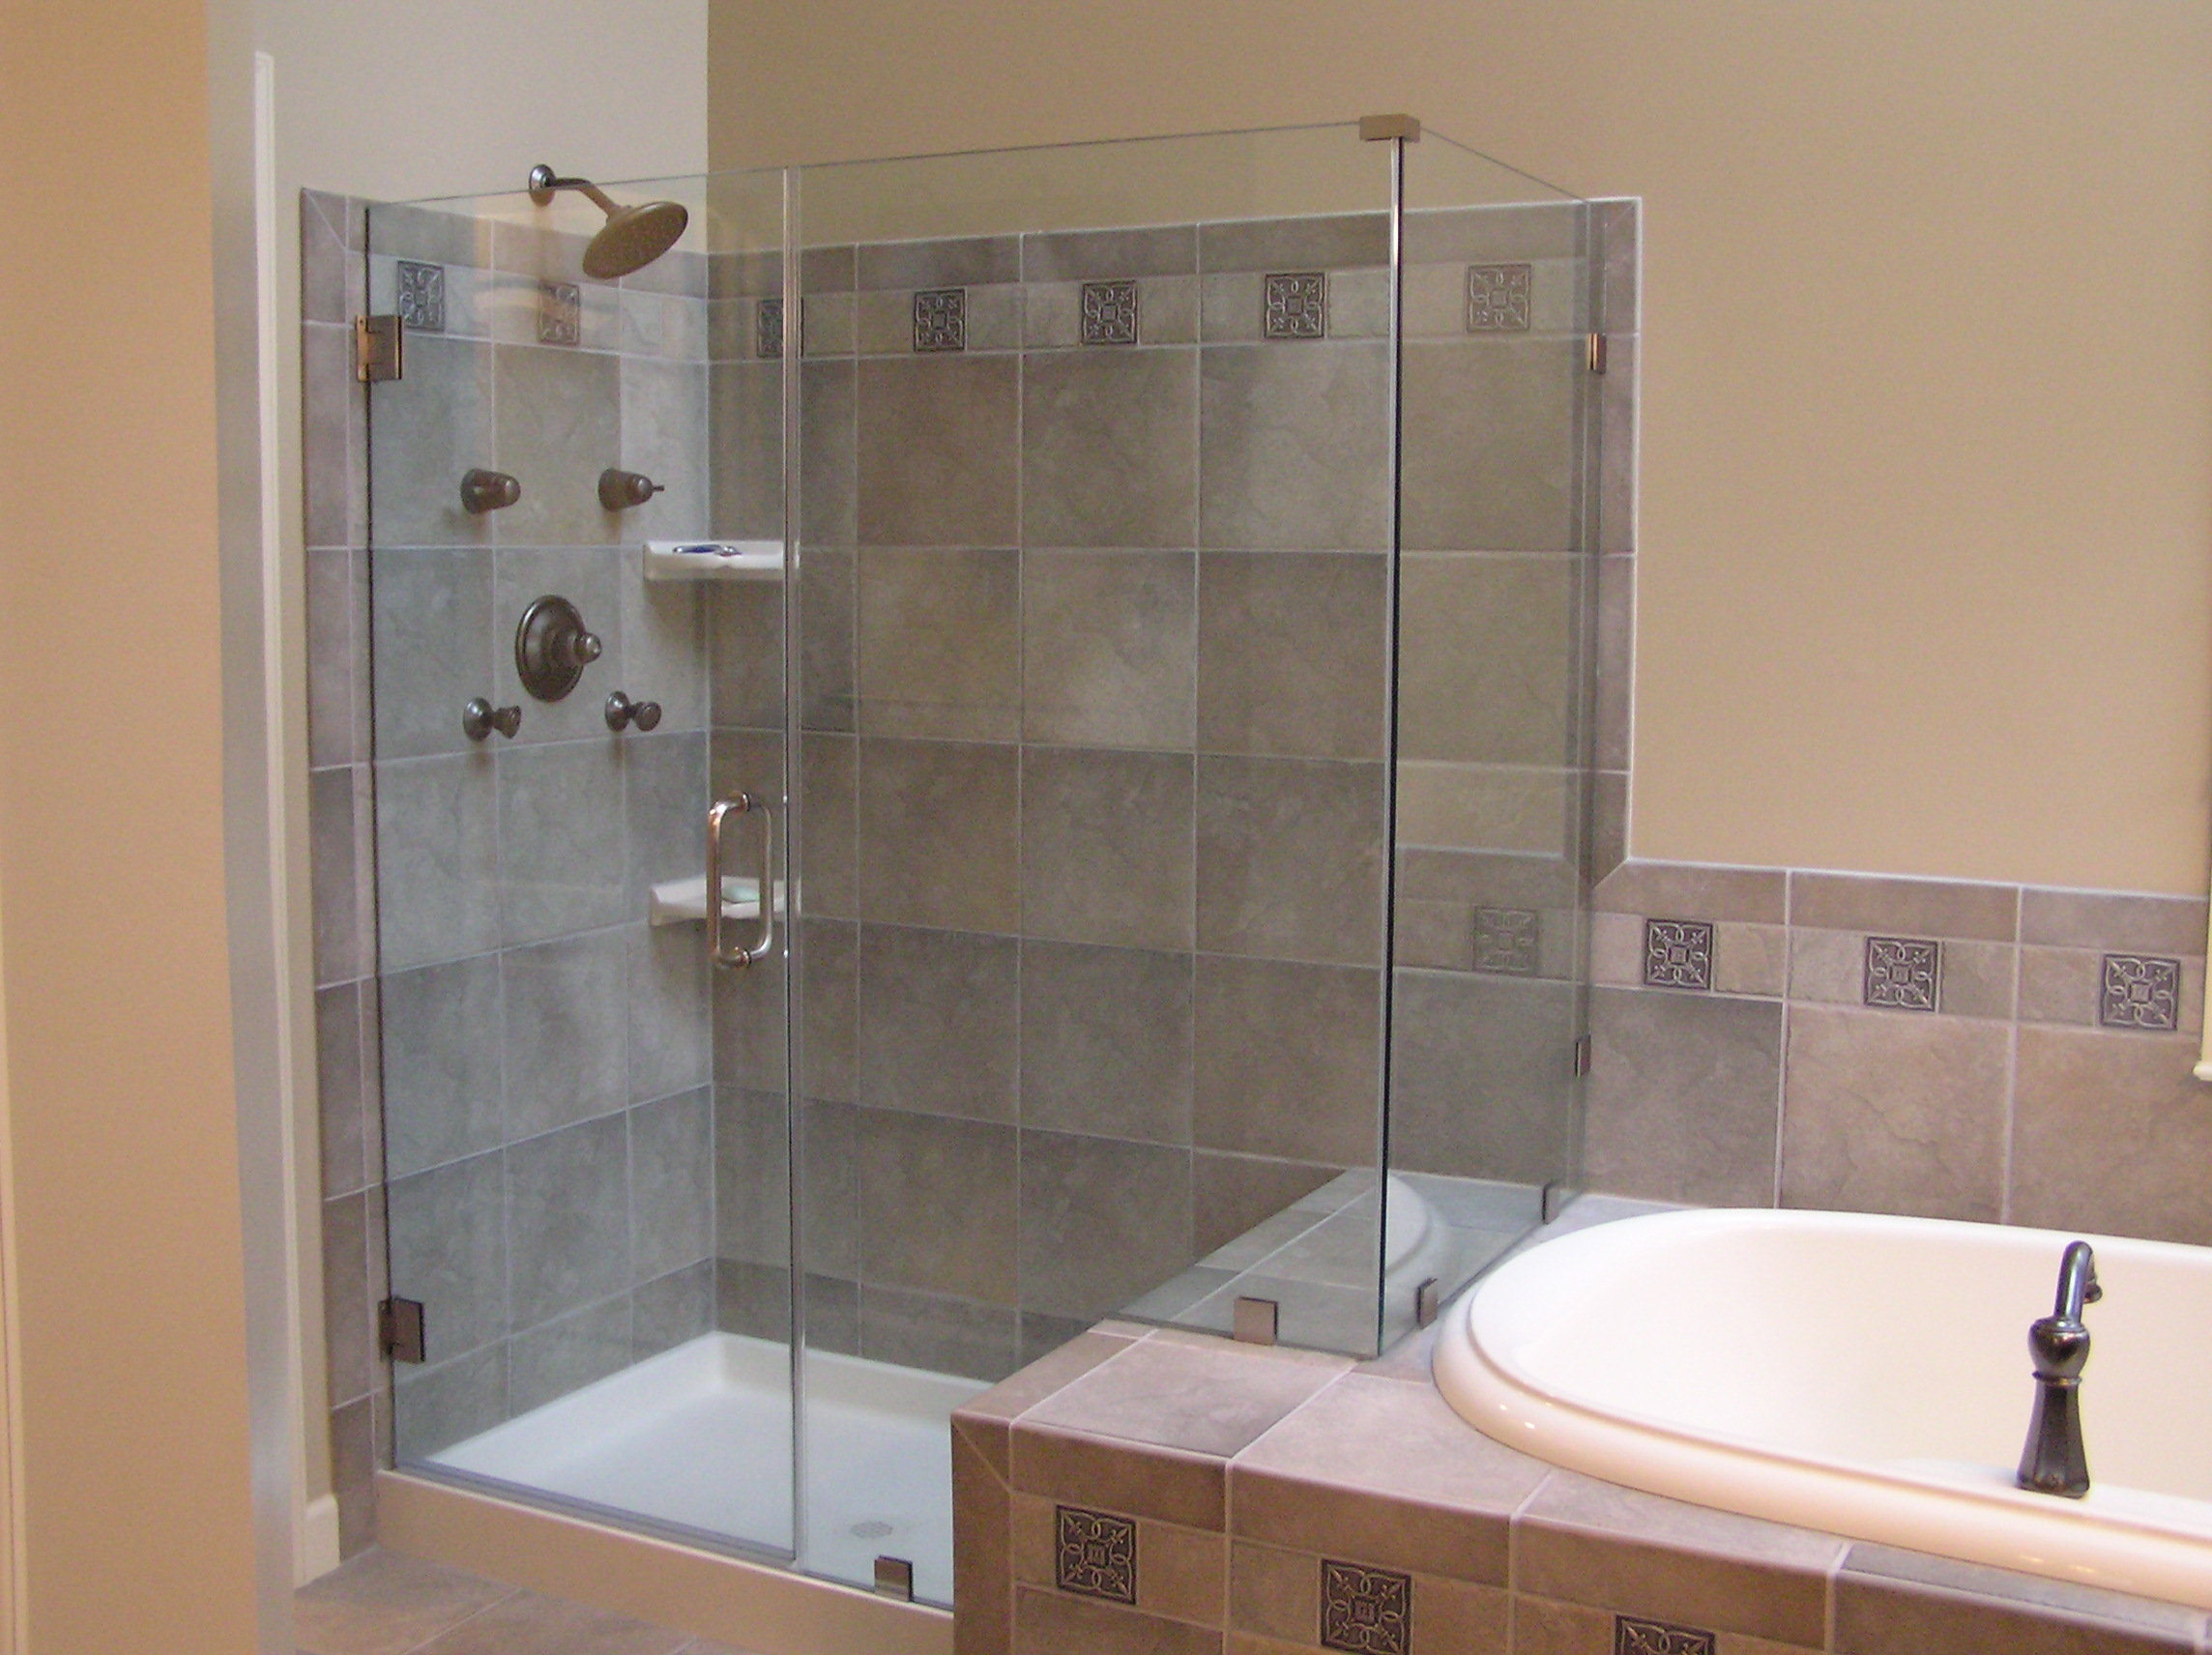 Small bathroom remodel cost - large and beautiful photos. Photo to ...